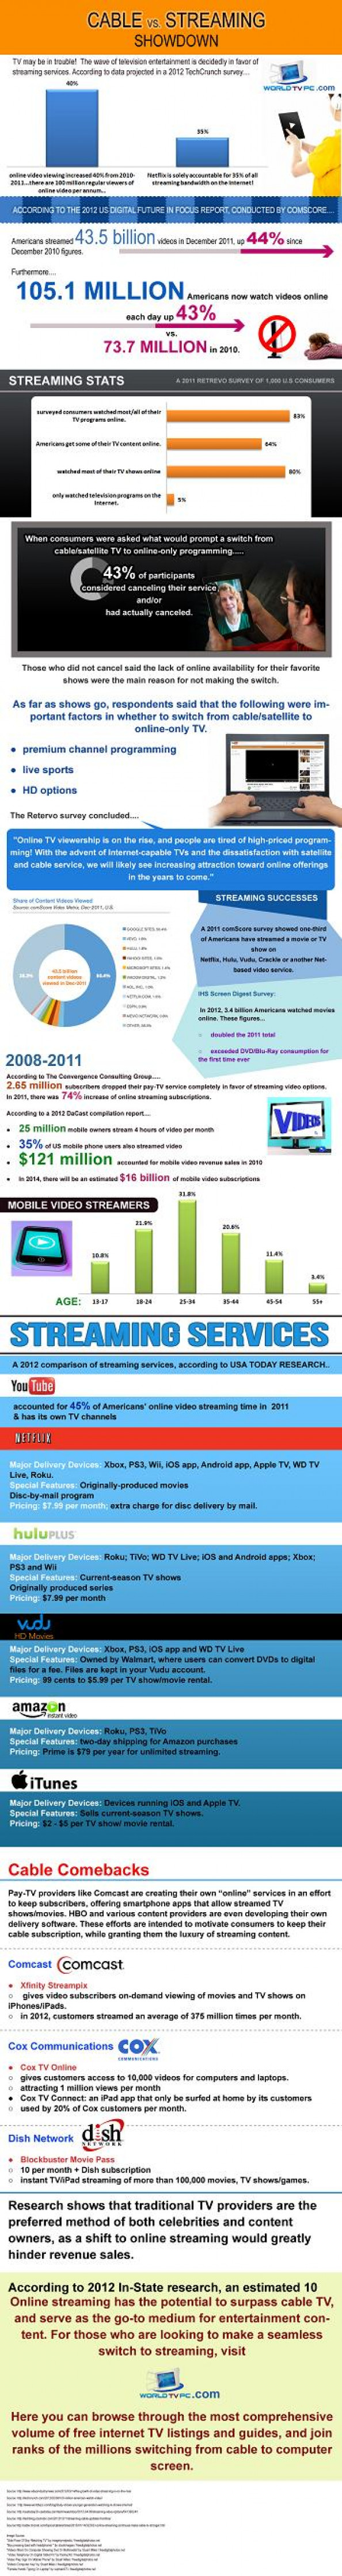 Cable vs. Streaming Showdown Infographic